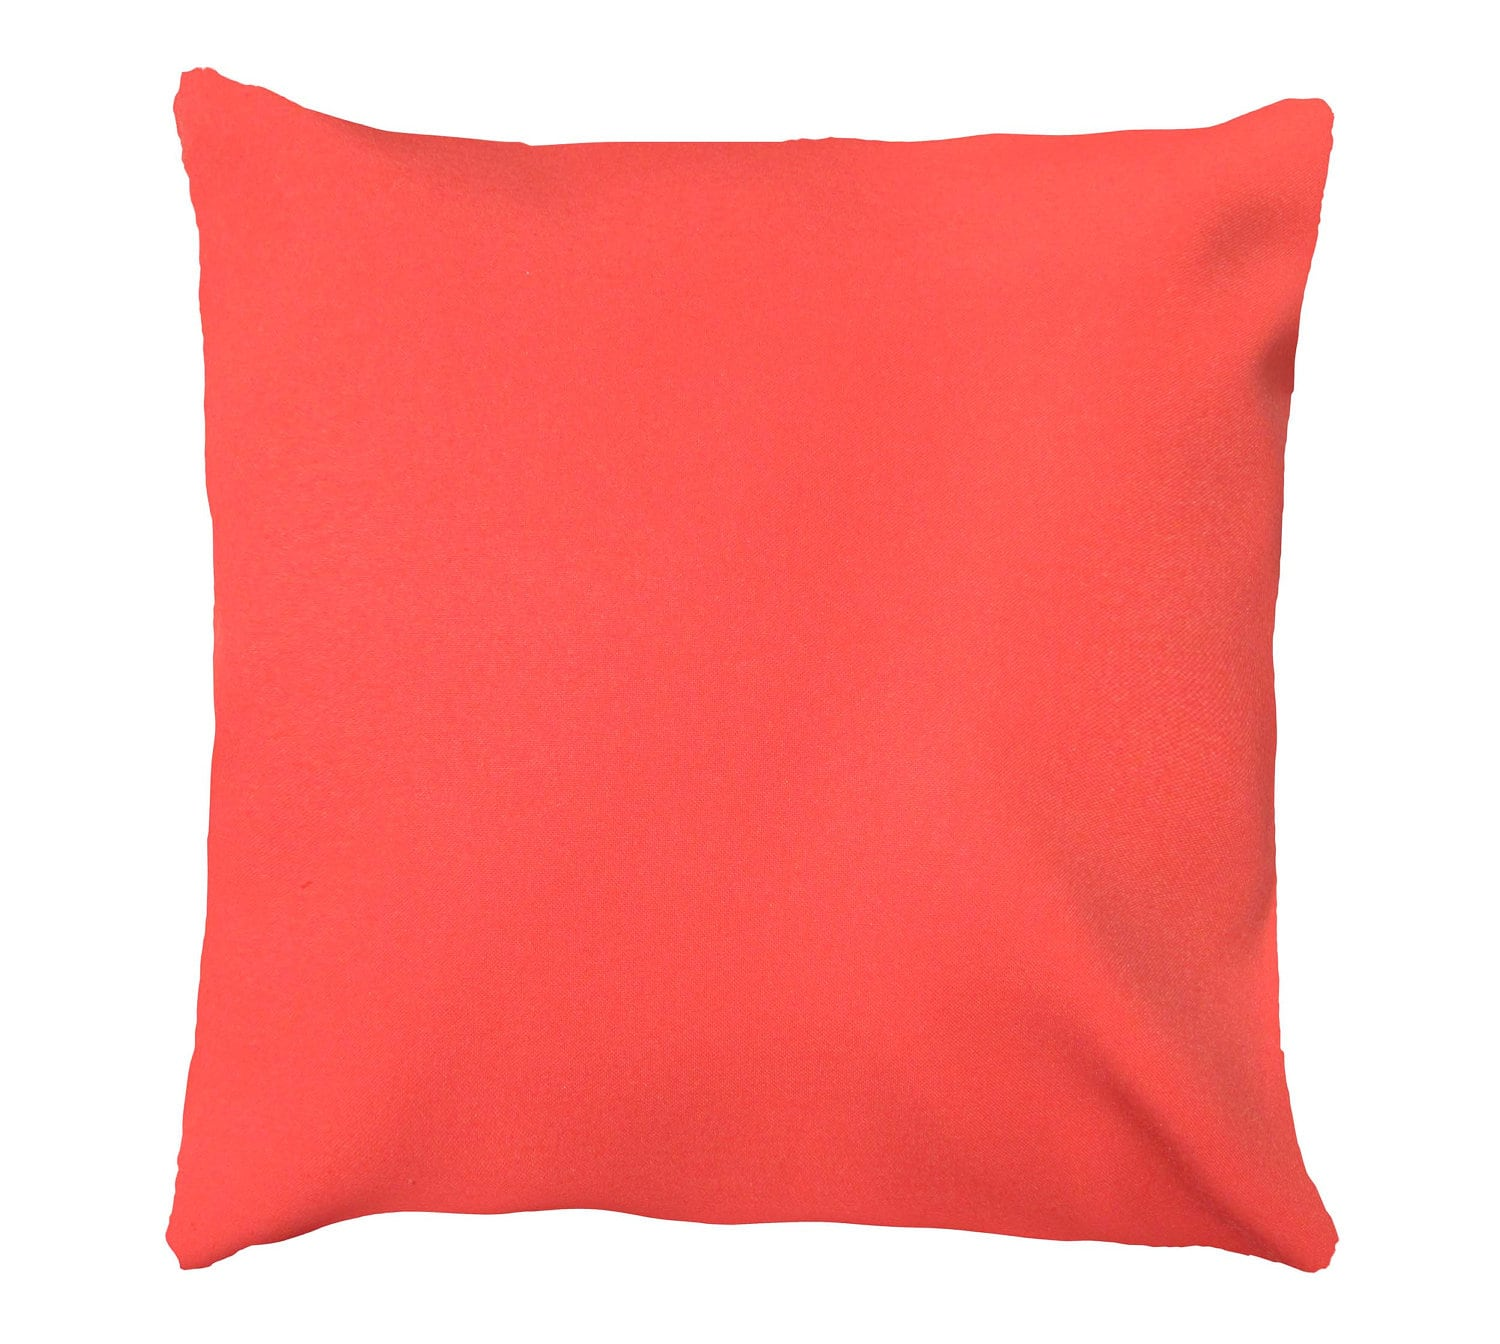 Solid Coral Throw Pillows : Coral Throw Pillow Cover. Pillow Cover Coral Solid Pillow